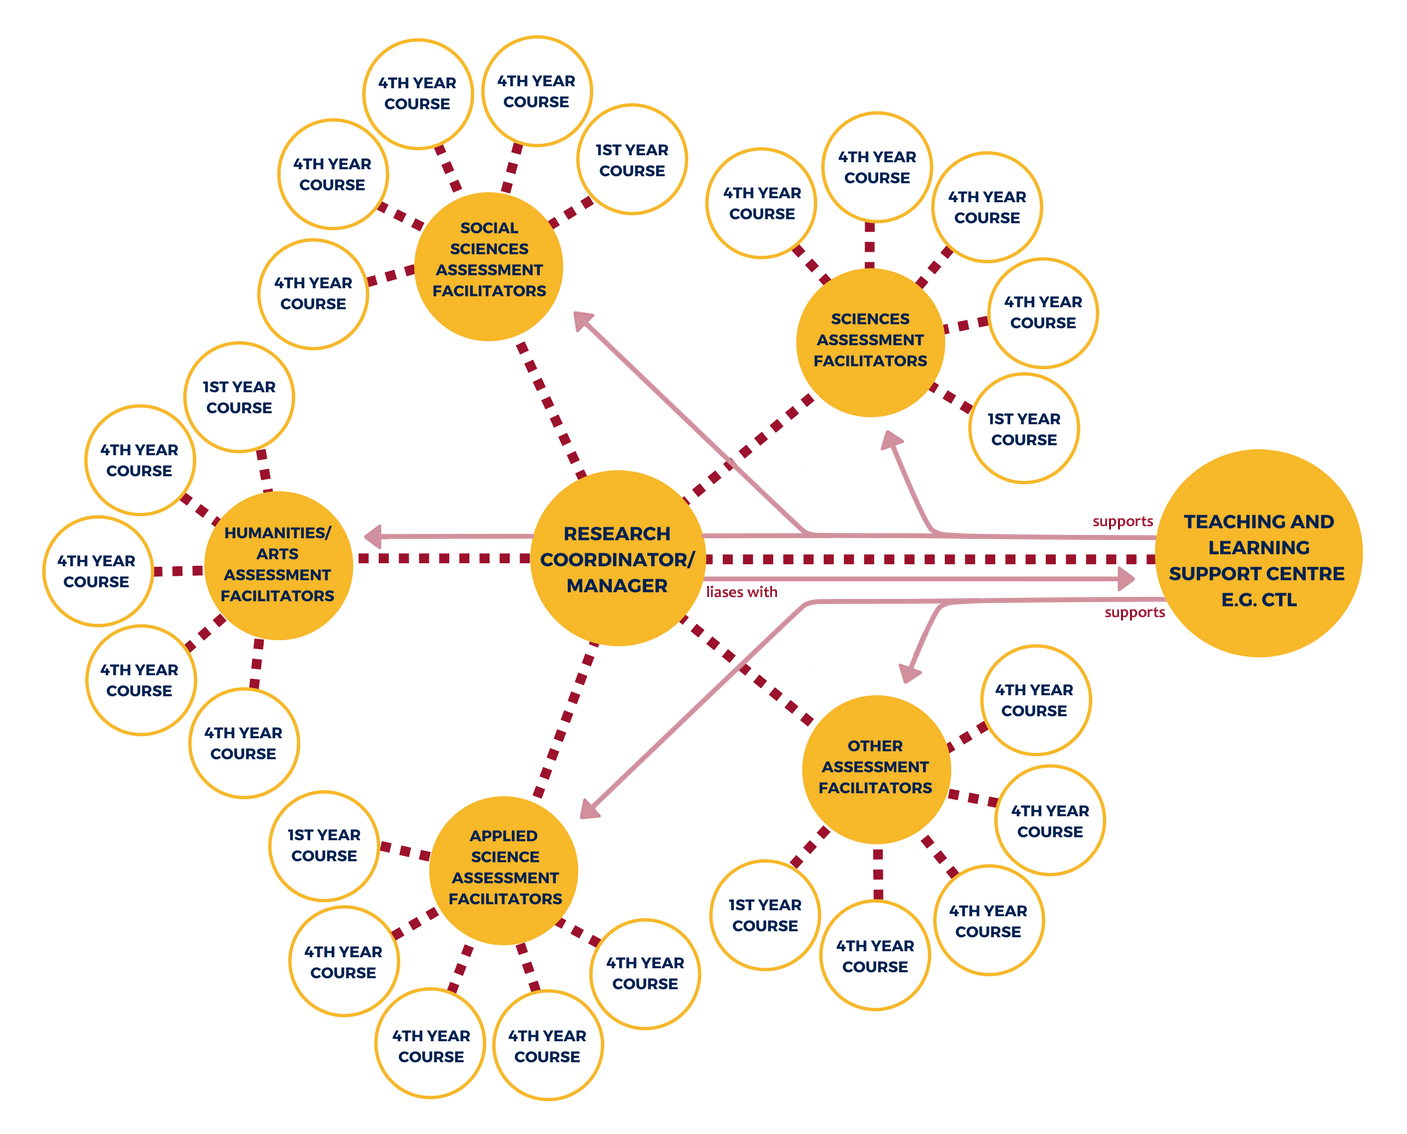 Graphic displaying the network. The research coordinator communicates with assessment facilitators. These facilitators communicate with course instructors from 1st and 4th year courses in their subject area. The project is supported by the Centre for Teaching and Learning.